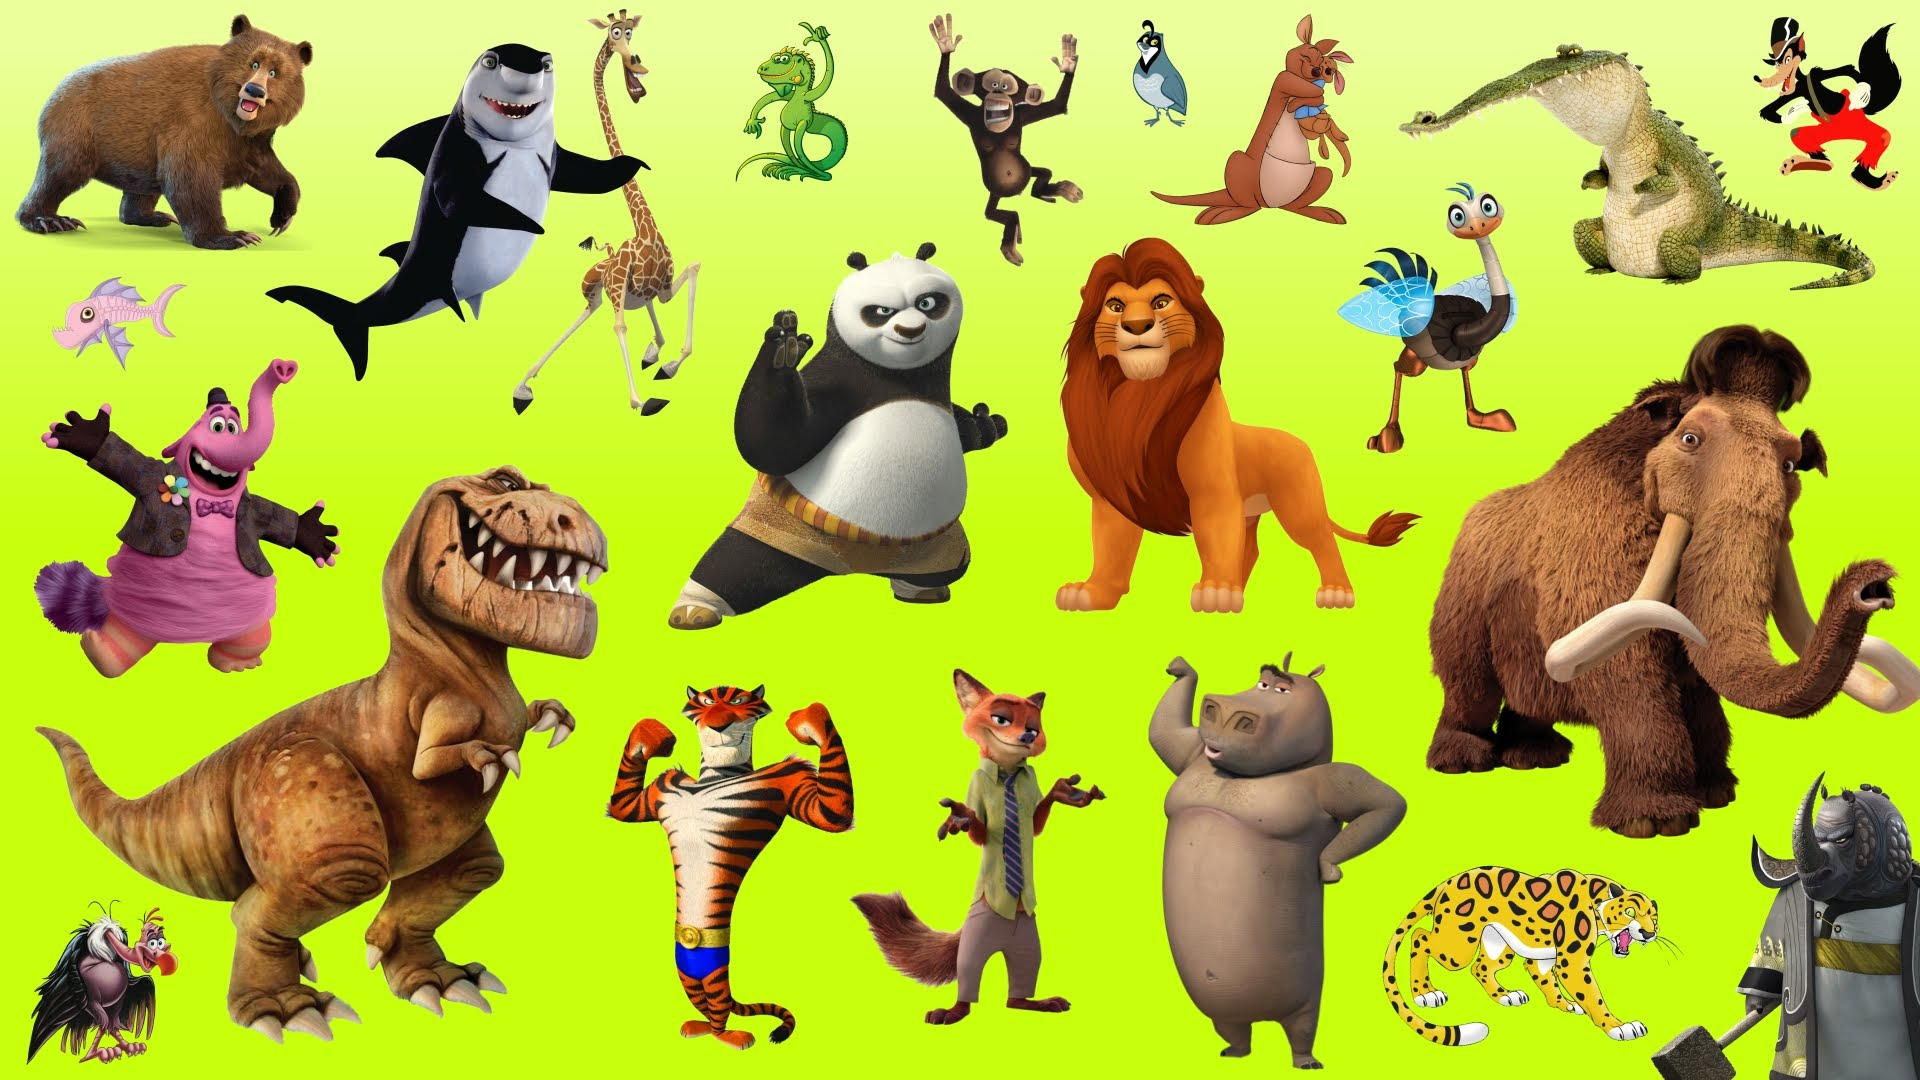 Cartoon Alphabet Learn Alphabet With Cartoon Real Animals For Children Abc Wild Animals Names And Sounds Environoego Protect The Planet Environoego Learn Alphabet With Cartoon Real Animals For Children Abc Wild